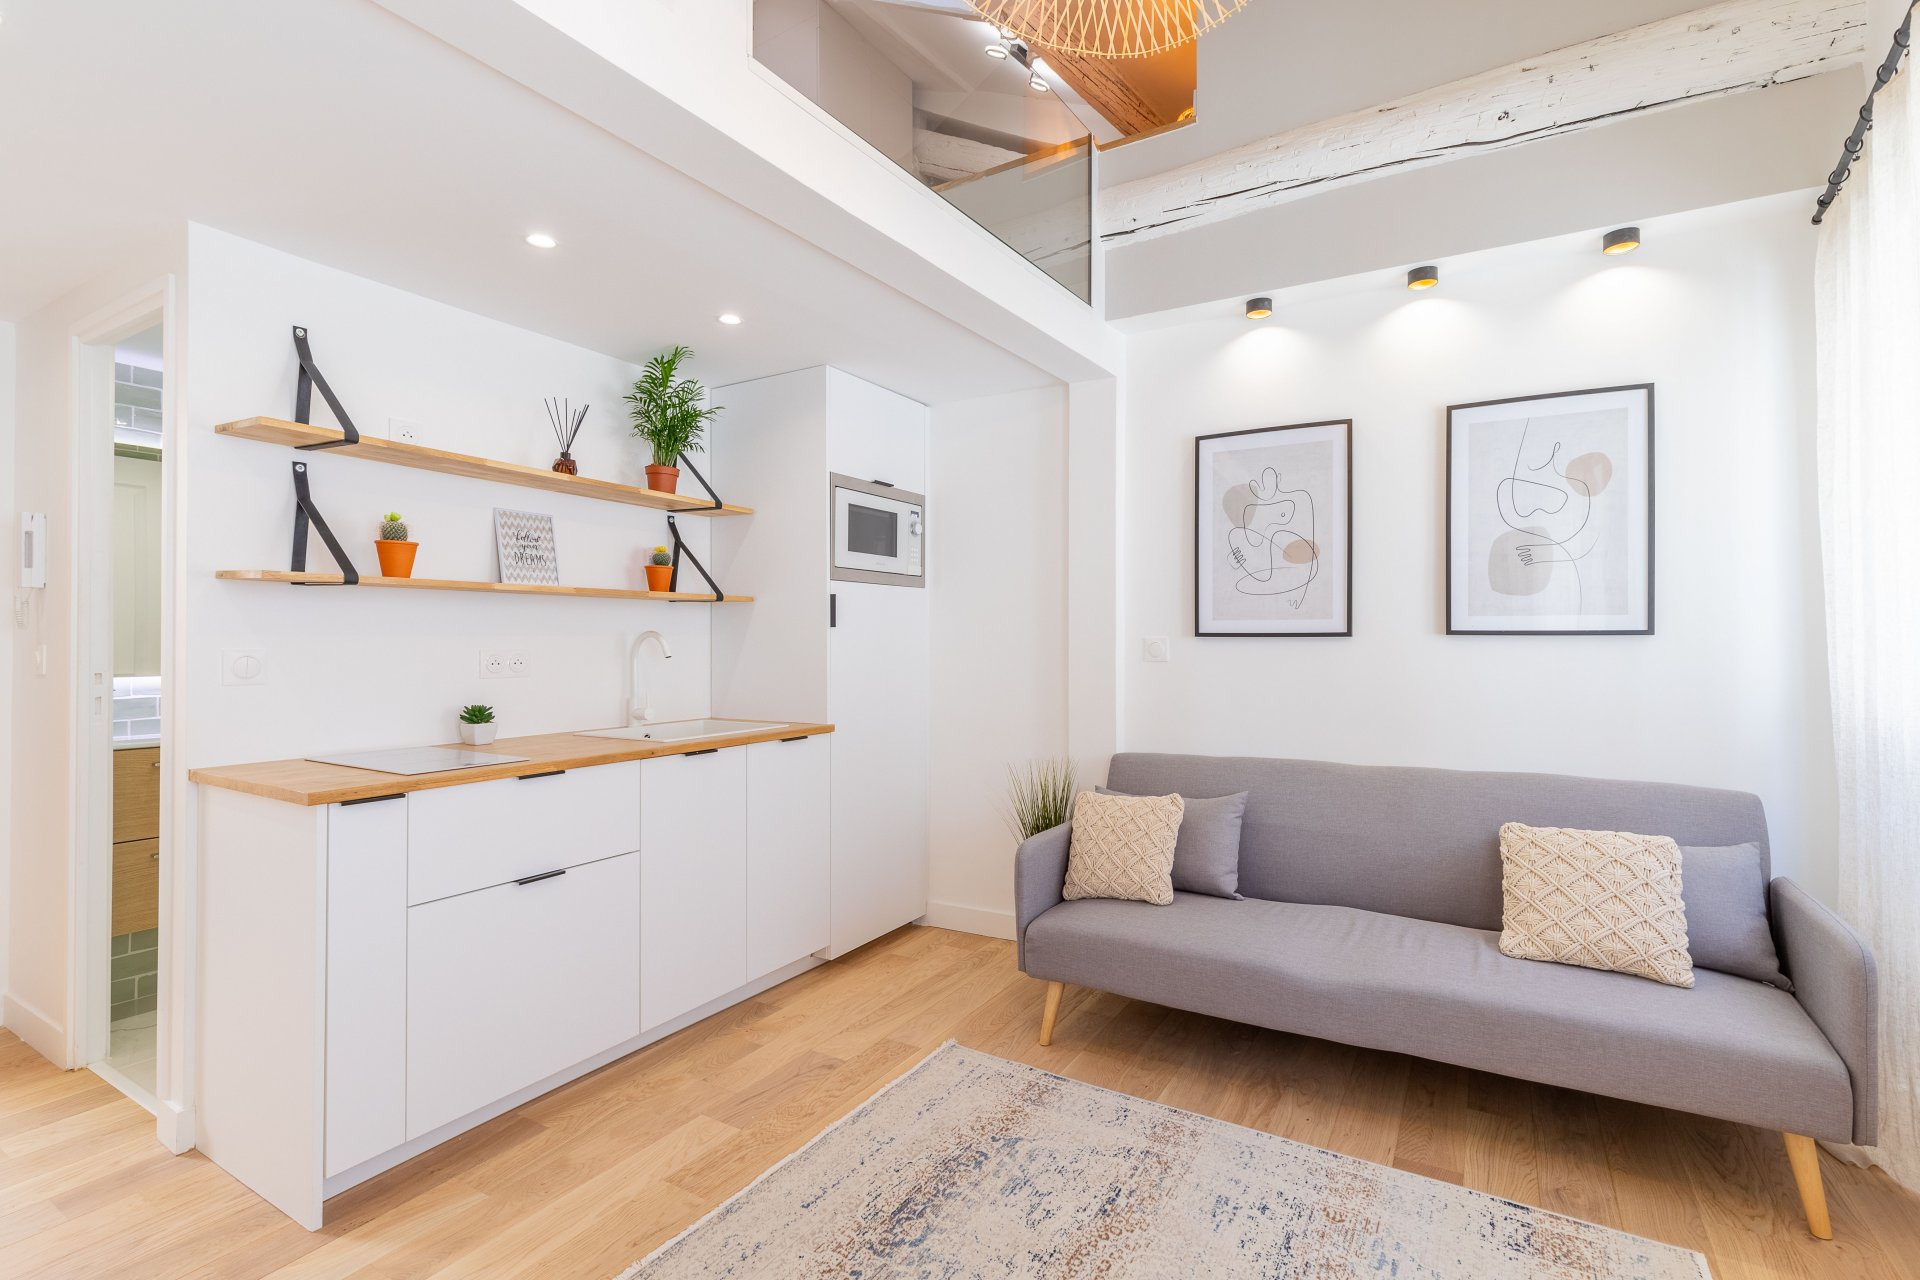 Old Town - One bedroom apartment renovate